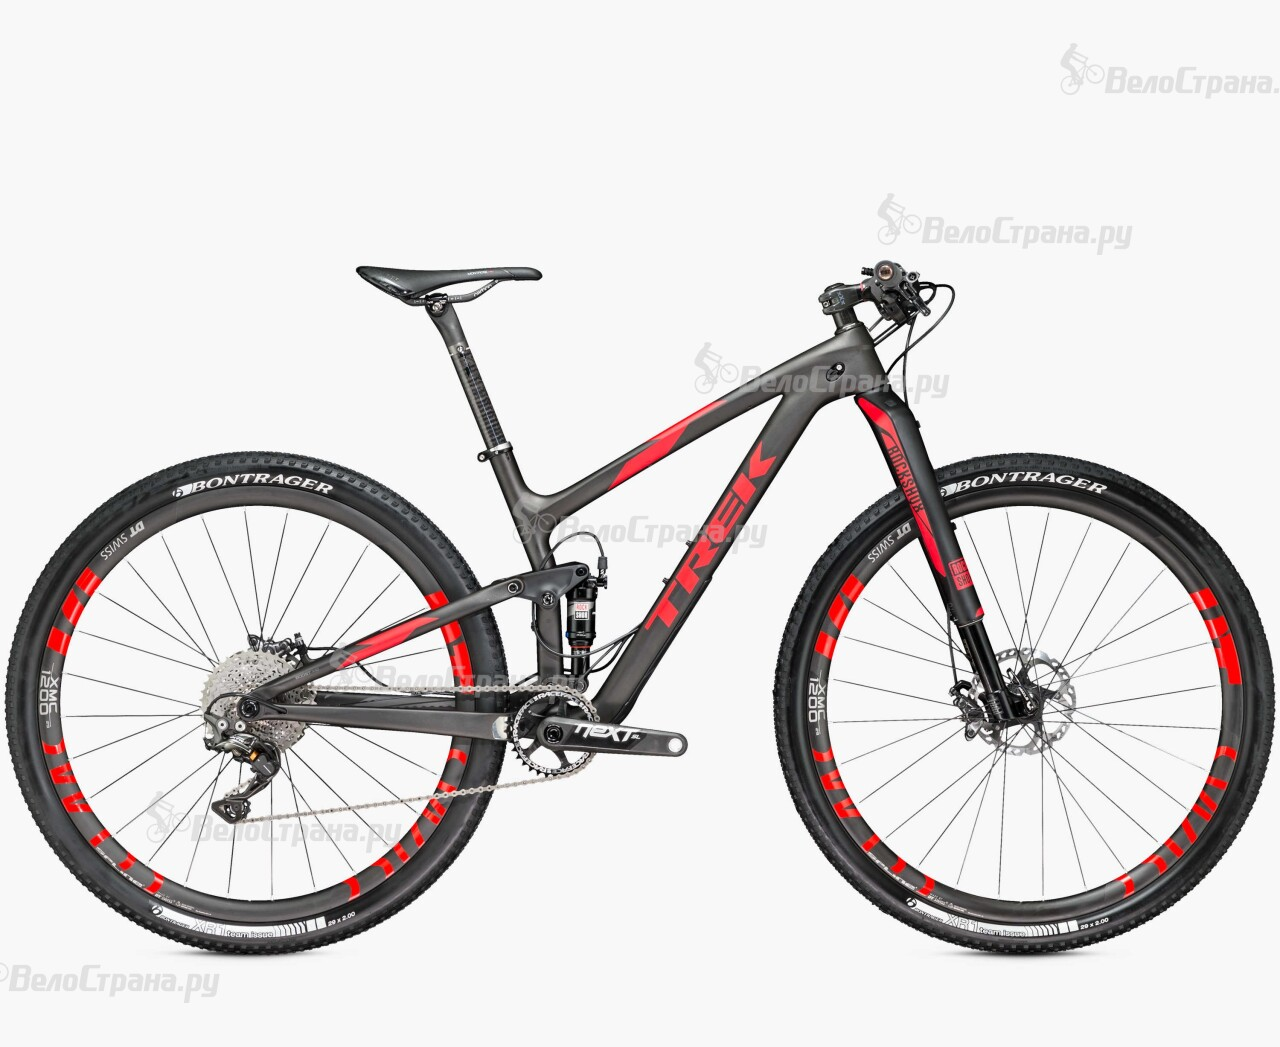 Велосипед Trek Top Fuel 9.9 SL 27,5 (2016) велосипед trek fuel ex 9 29 2017